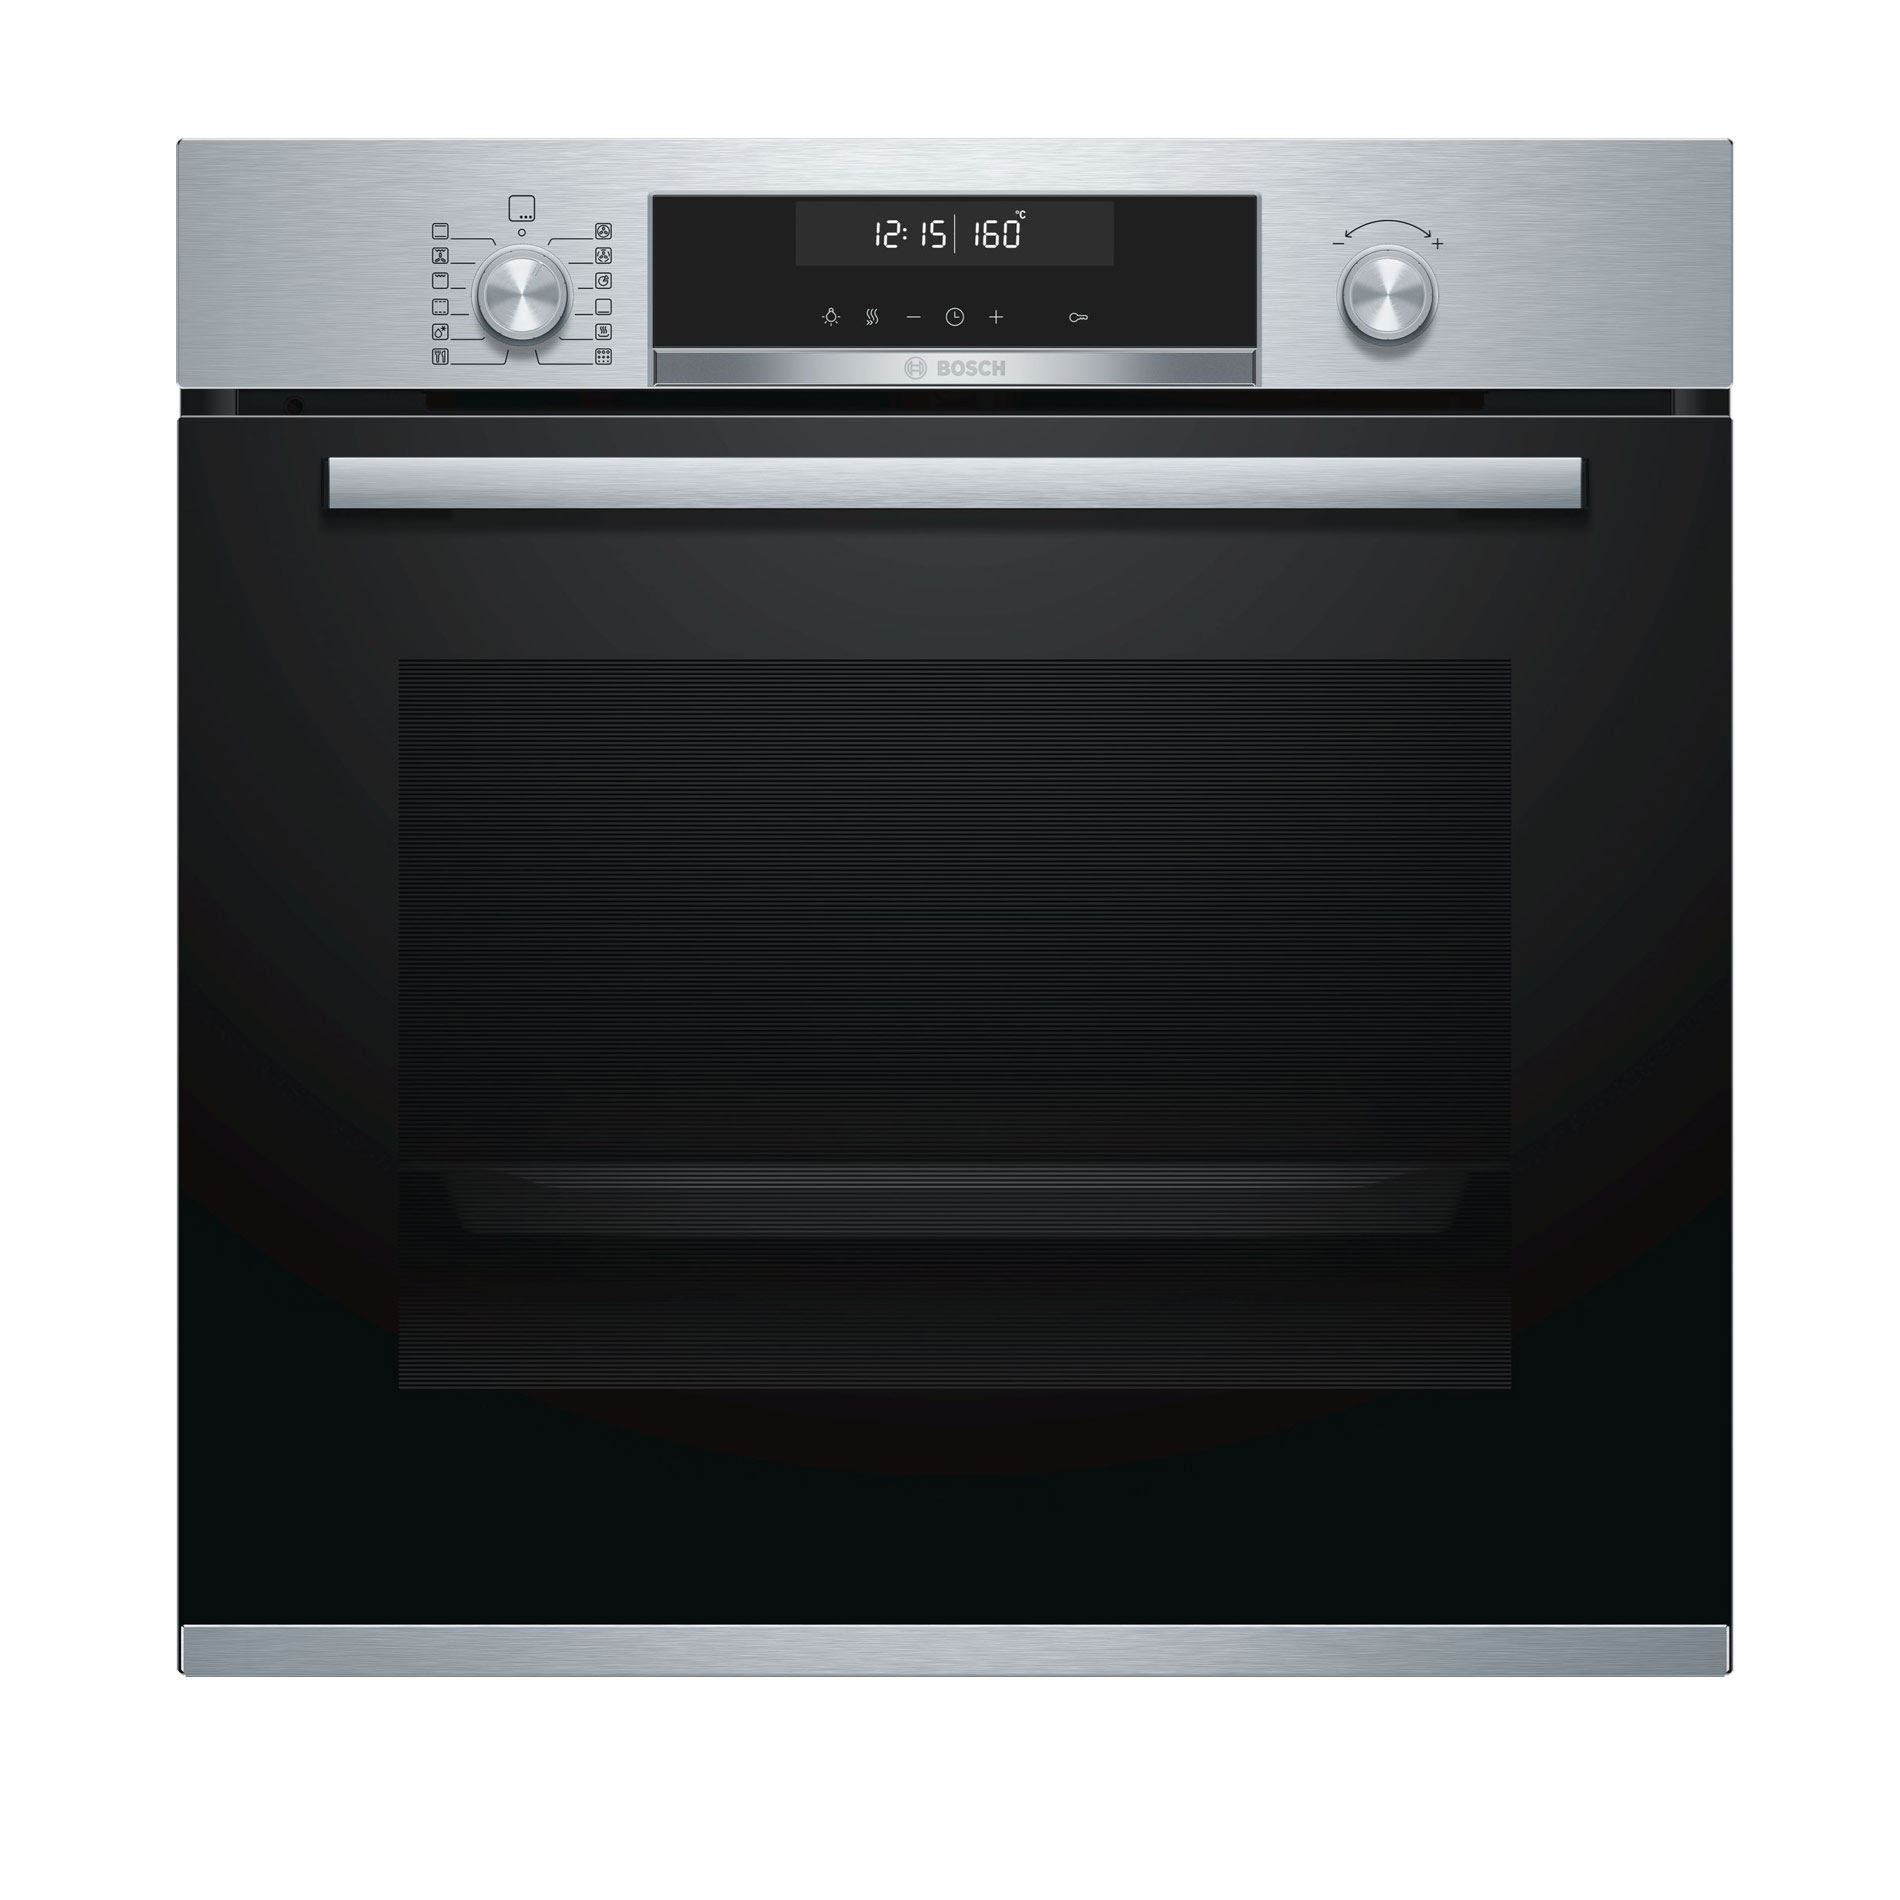 Picture of HBG5785S0B Single Pyrolytic Oven Brushed Steel